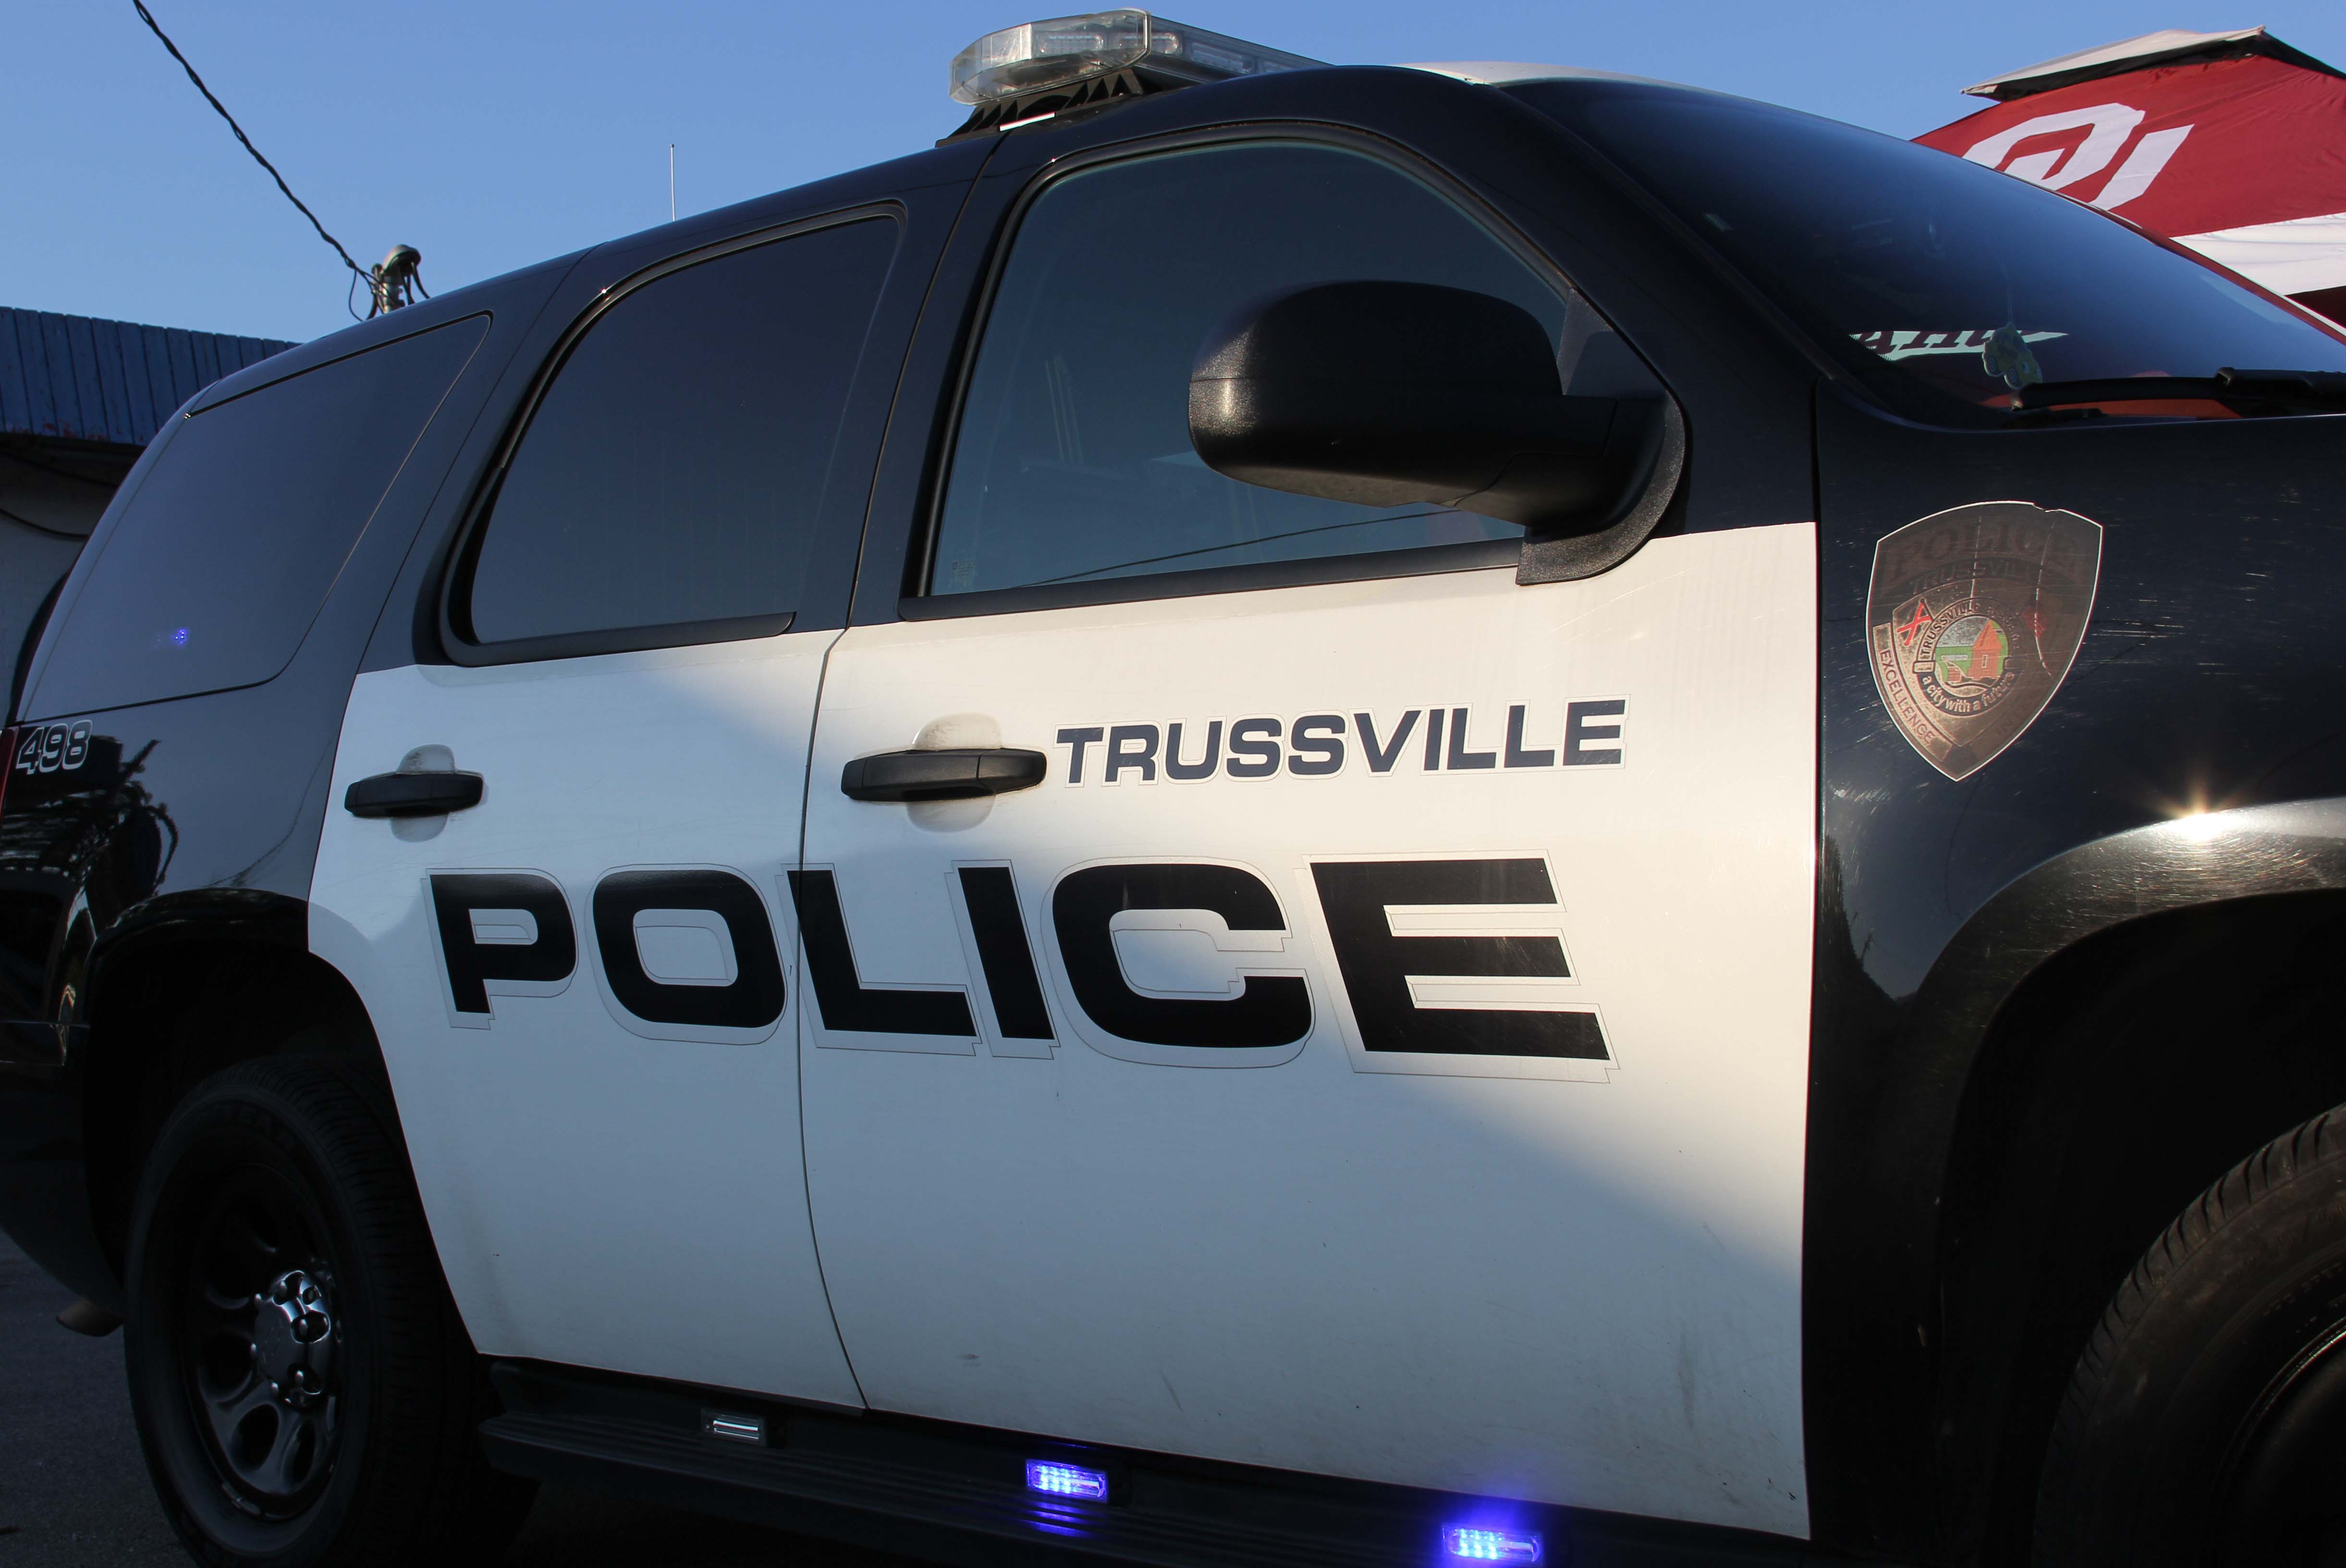 Trussville police: decreased visibility that resulted from sunset may have played a role in 3-vehicle crash on North Chalkville Road